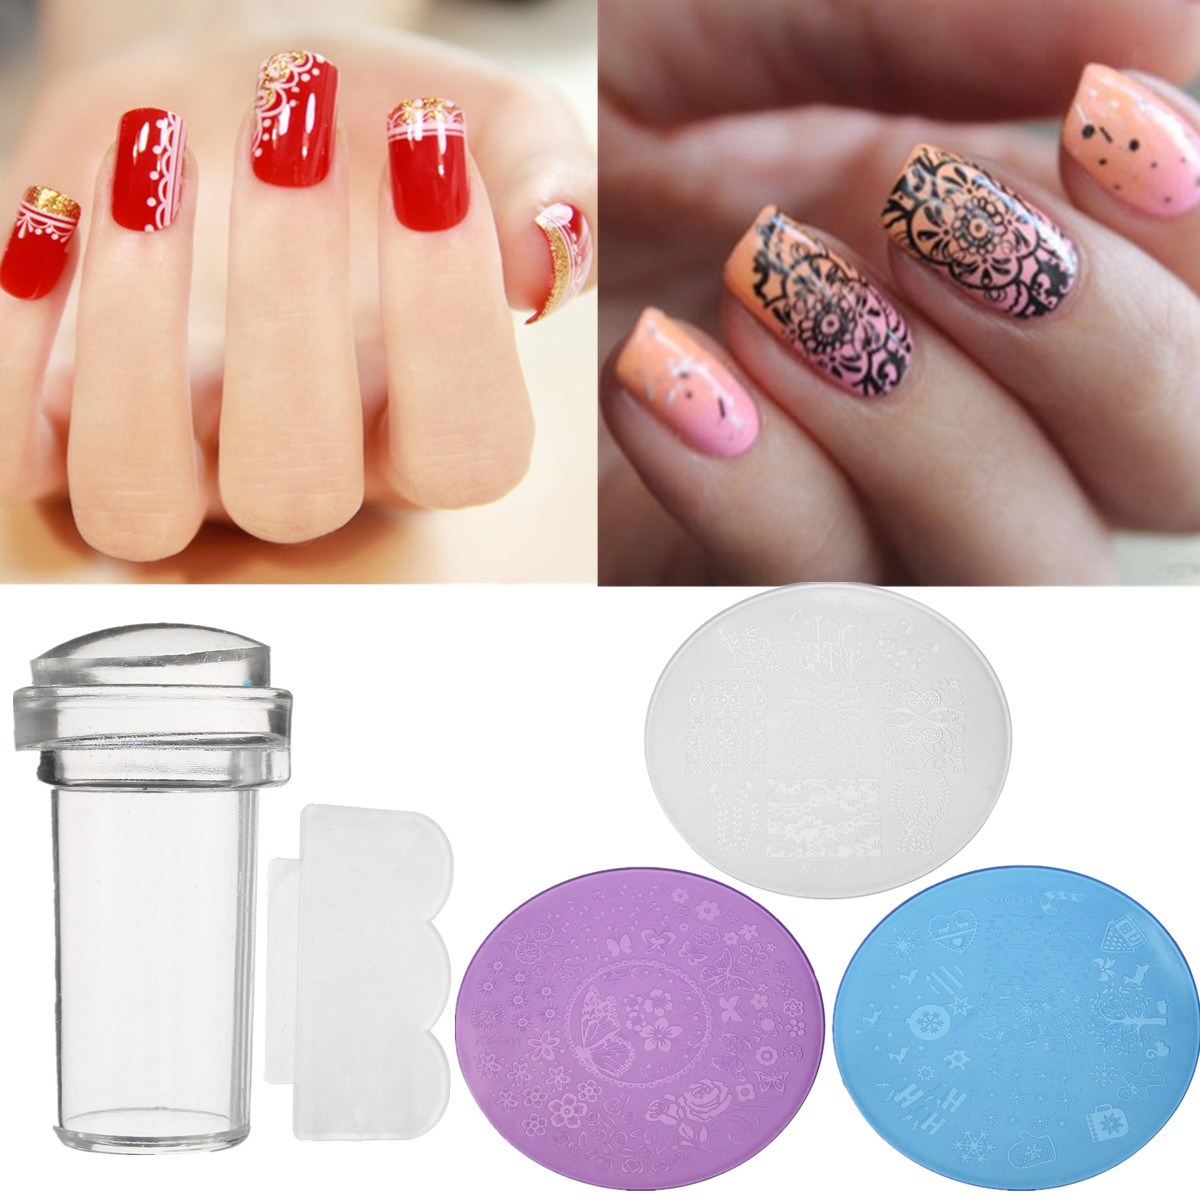 DANCINGNAIL 3Pcs/Set Nail Art Stamp Stencil Stamper Design Stamping Image Template Plate Kit